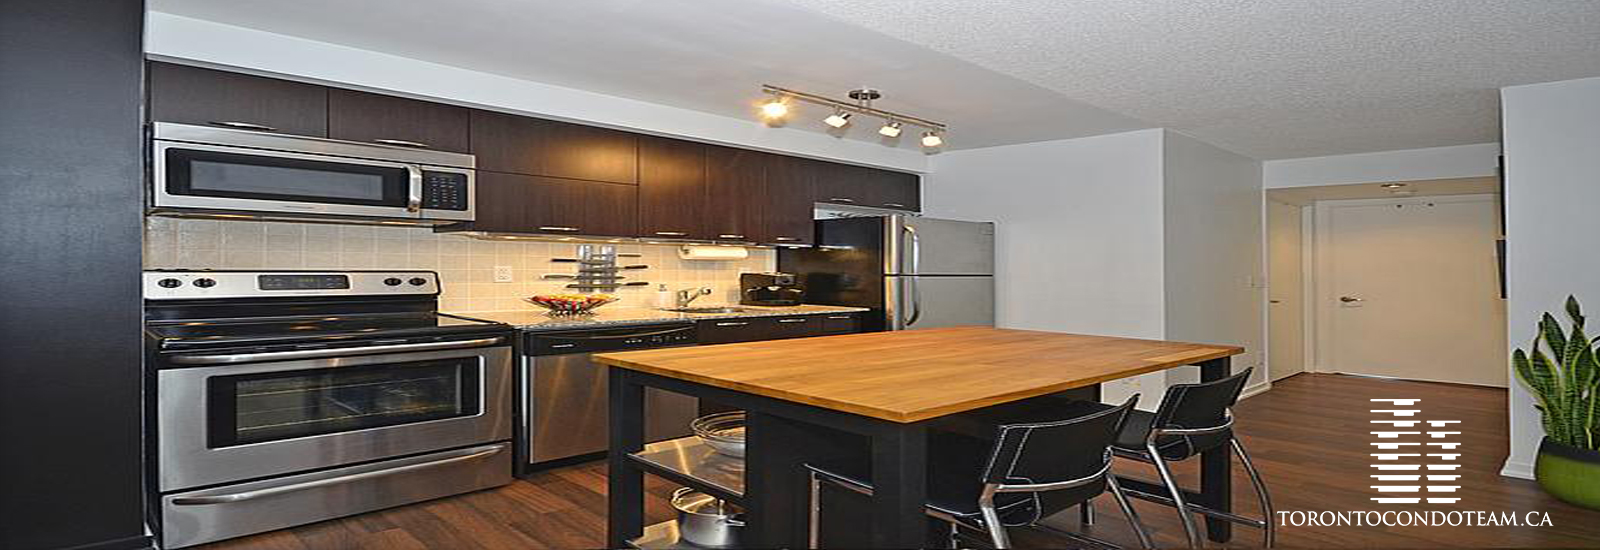 38 Joe Shuster Way Condos For Sale